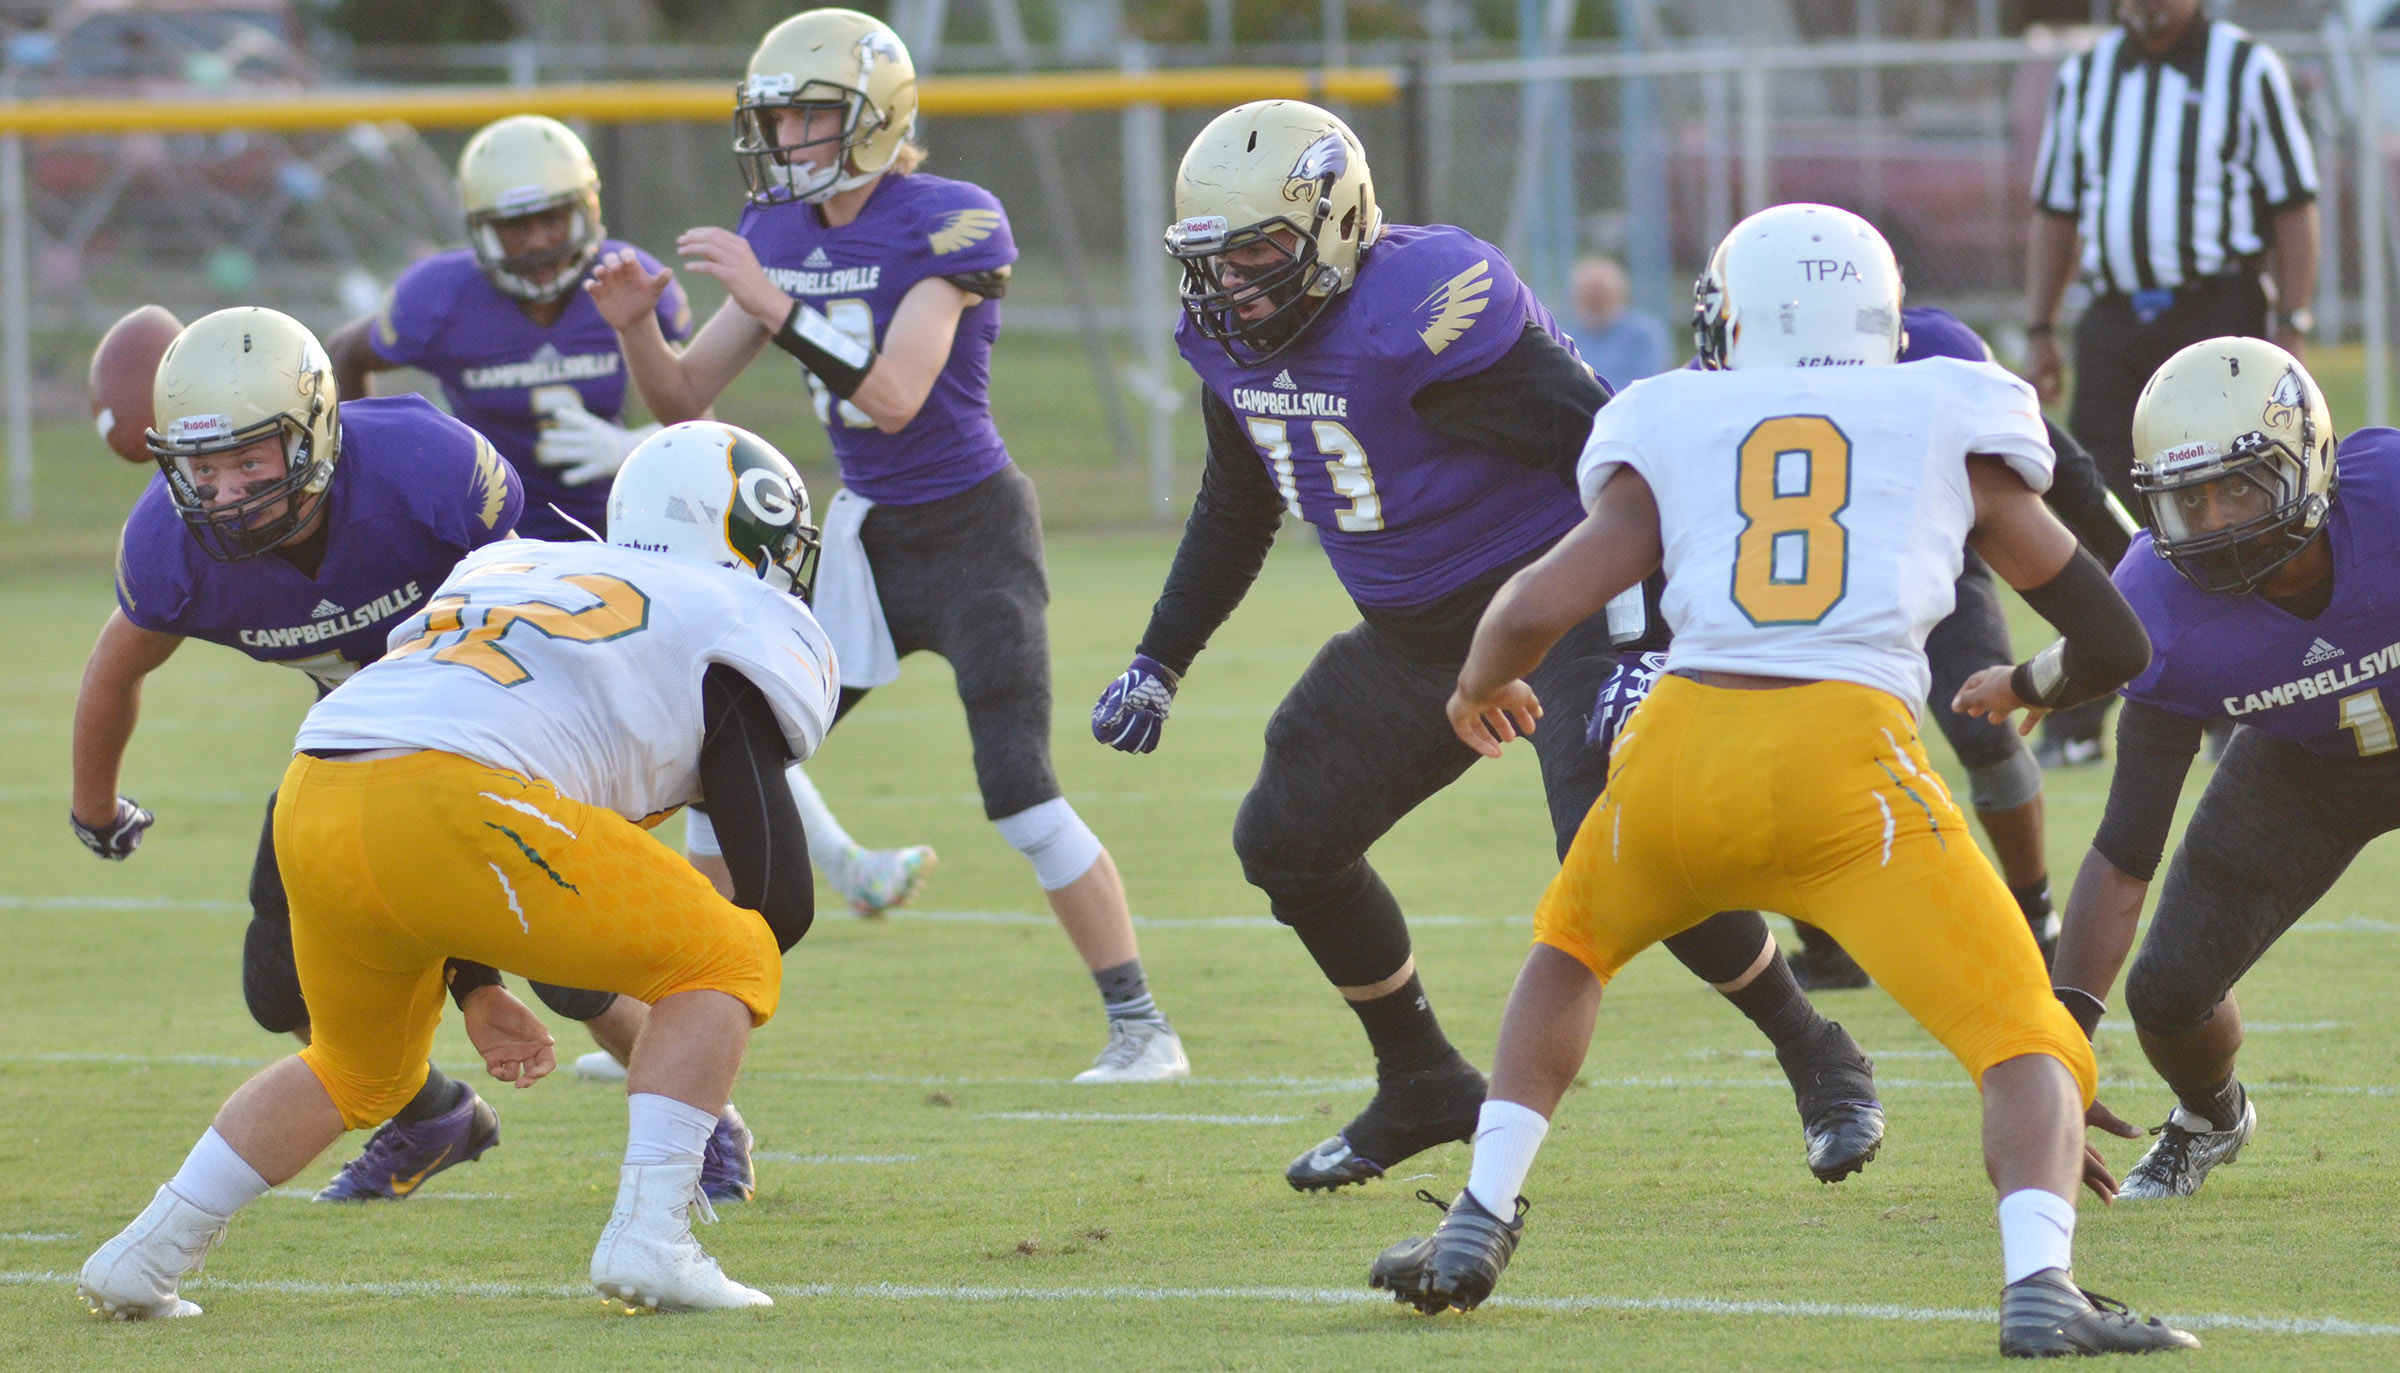 CHS senior Ryan Jeffries, center, tackles.